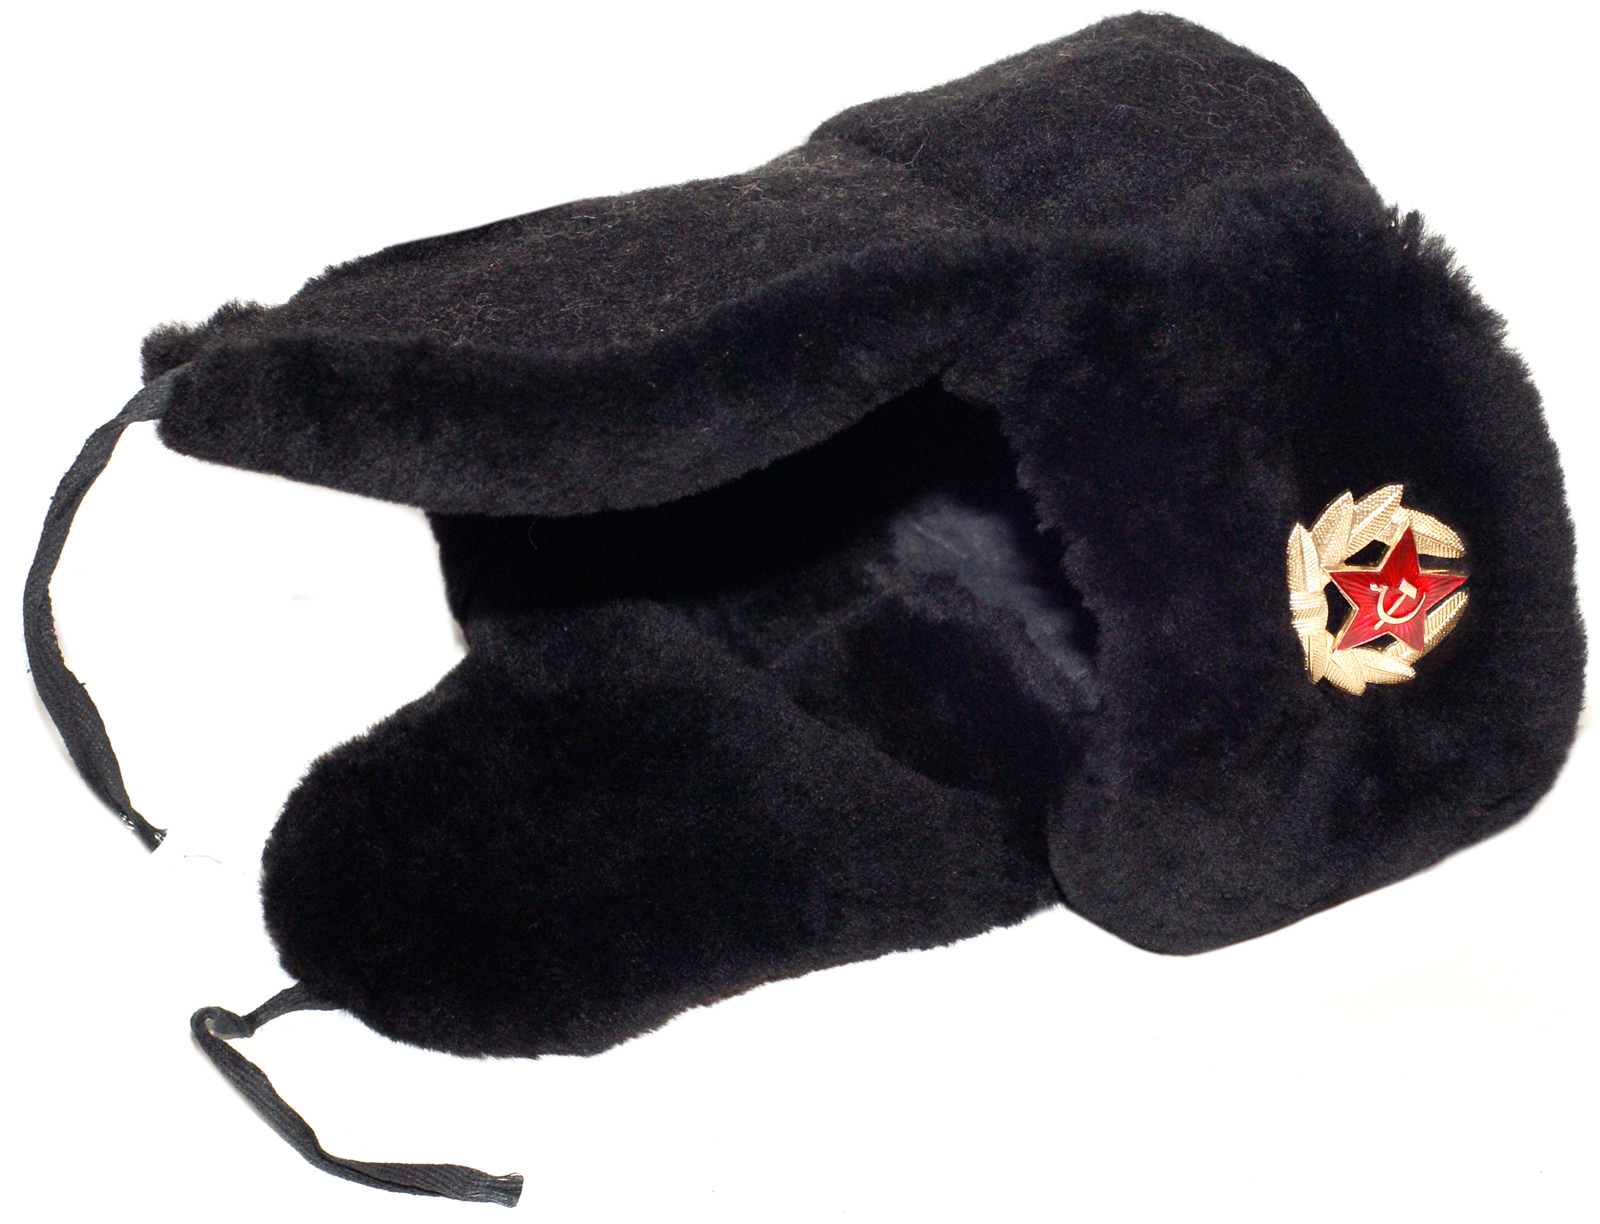 bcd7ce64abaf3 Navy officer of the Russian Federation mouton ushanka hat. Current issue.